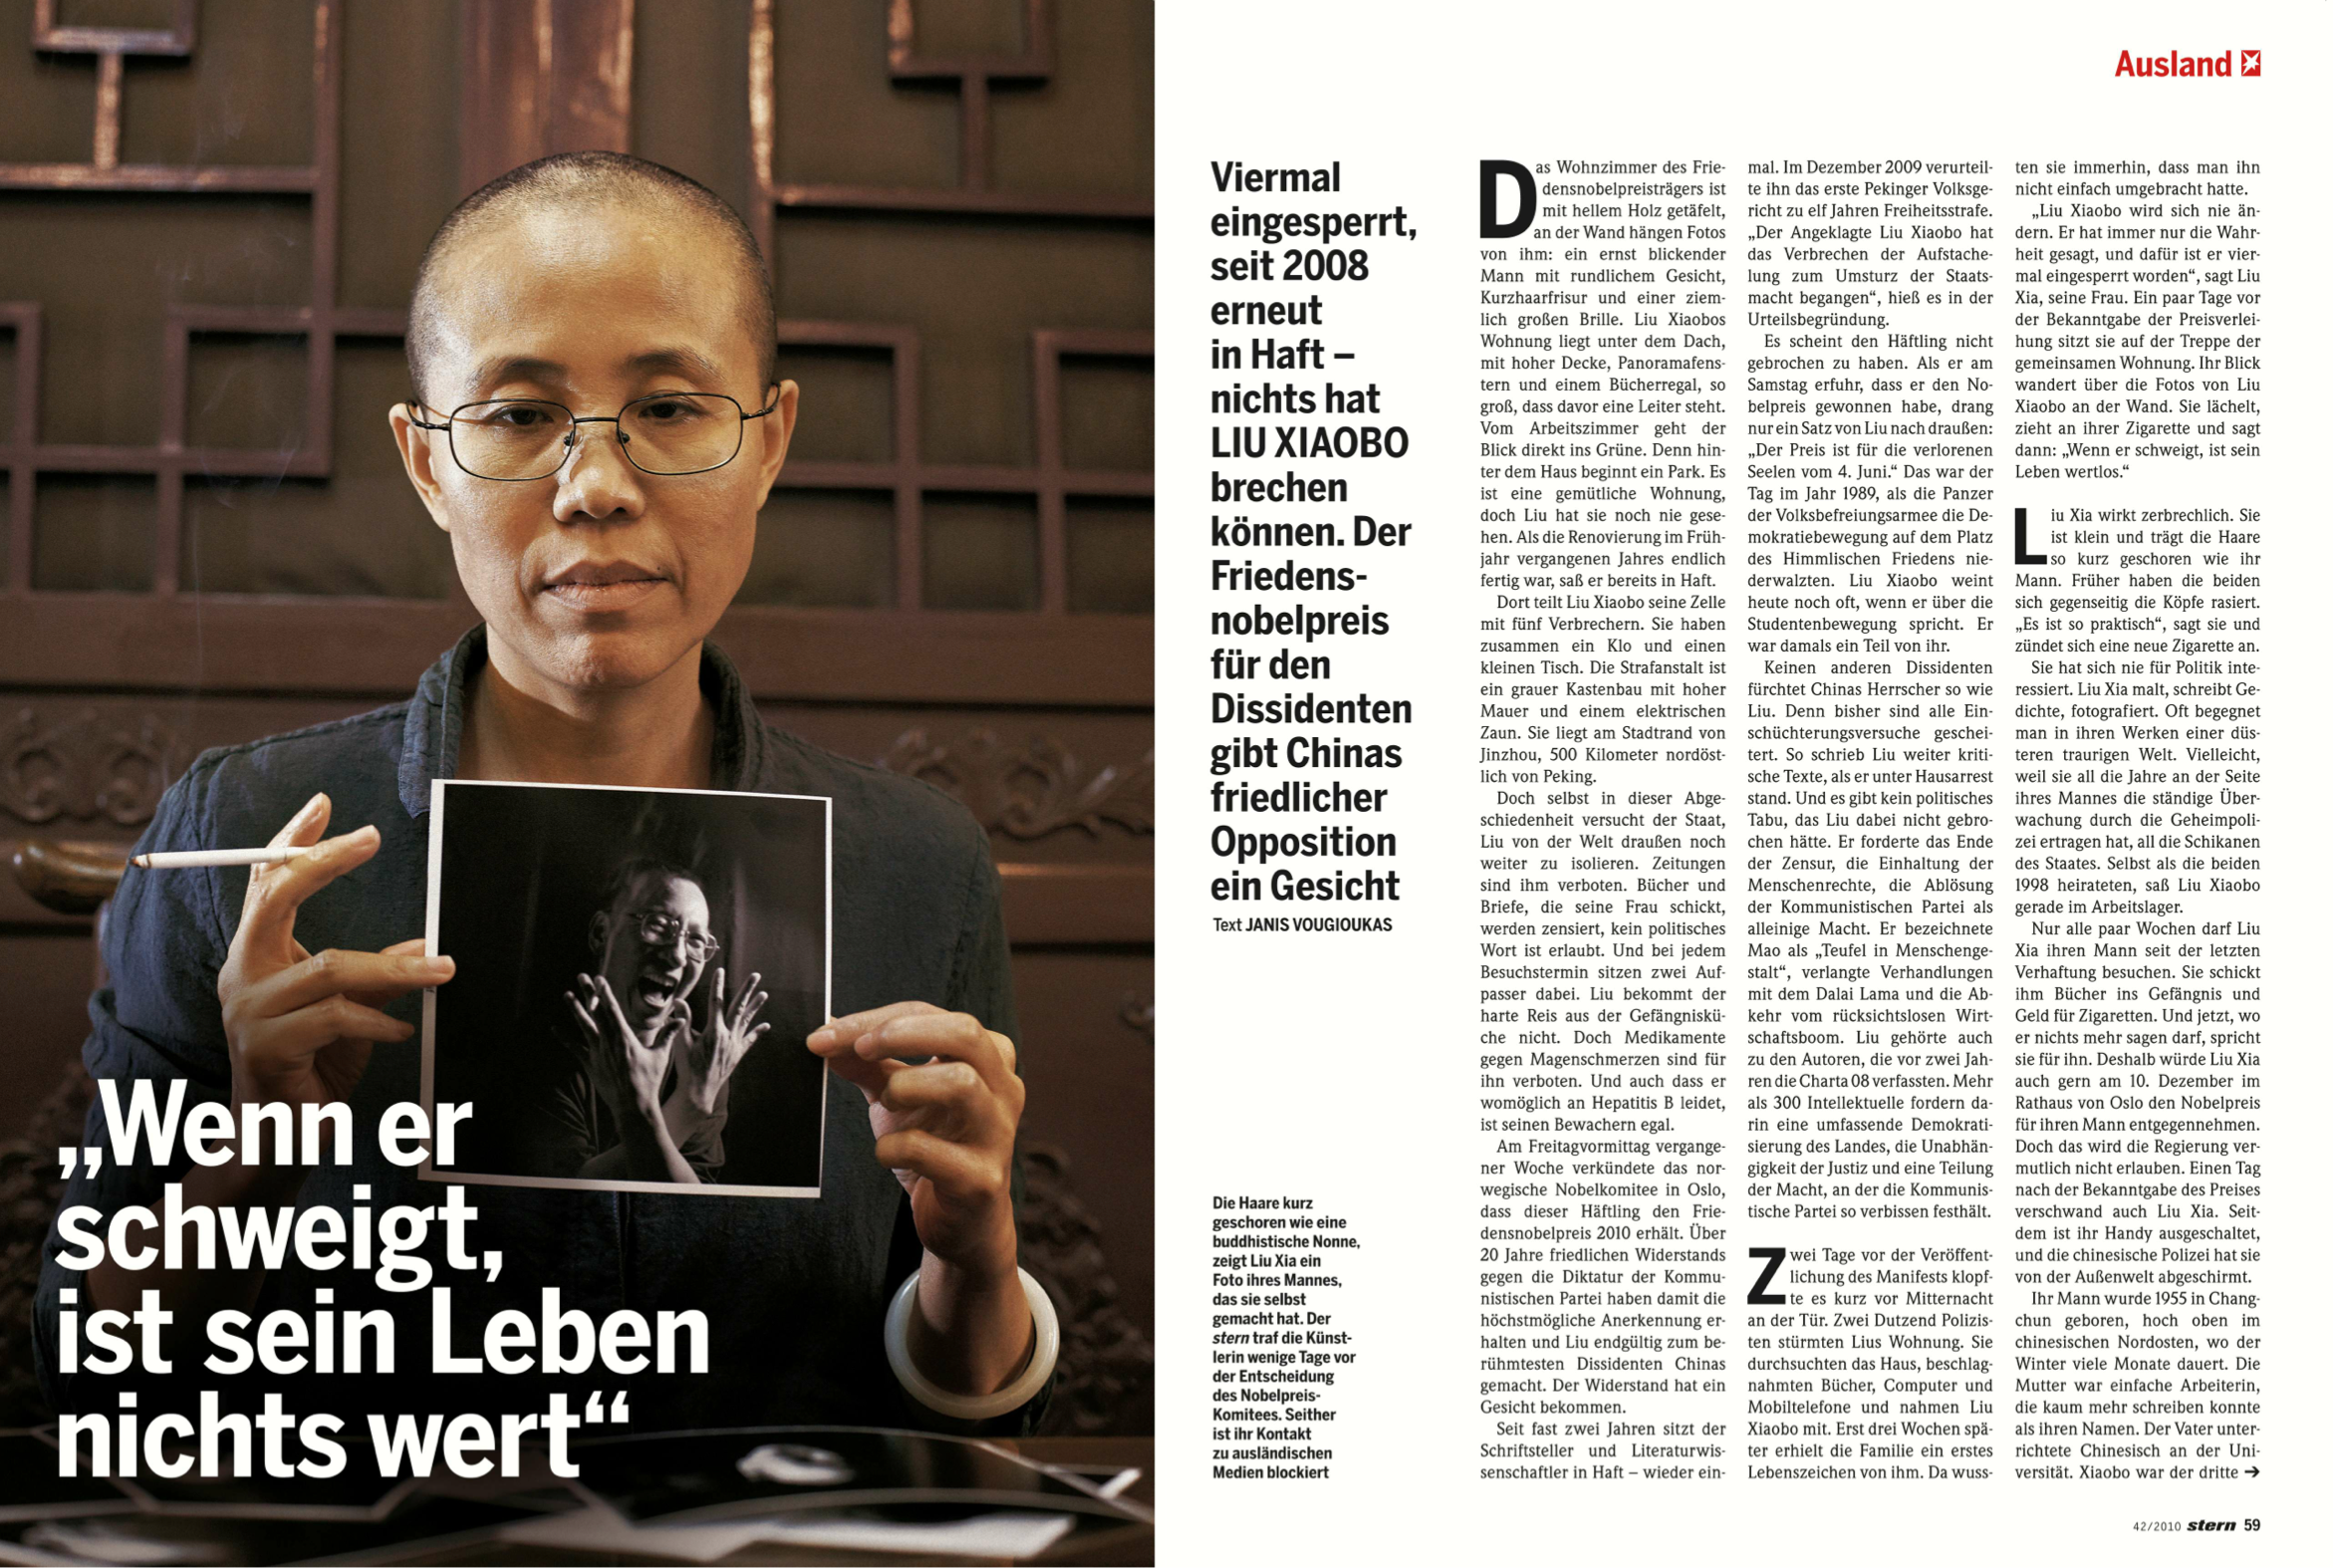 """When he is silent, his life is not worth a penny"", stern 42/2010 Four times imprisoned, since 2008 in jail - nothing could break his spirit. The Piece-Nobel-Prize for Liu Xiaobo gives the opposition in China a face. Photo: stern"